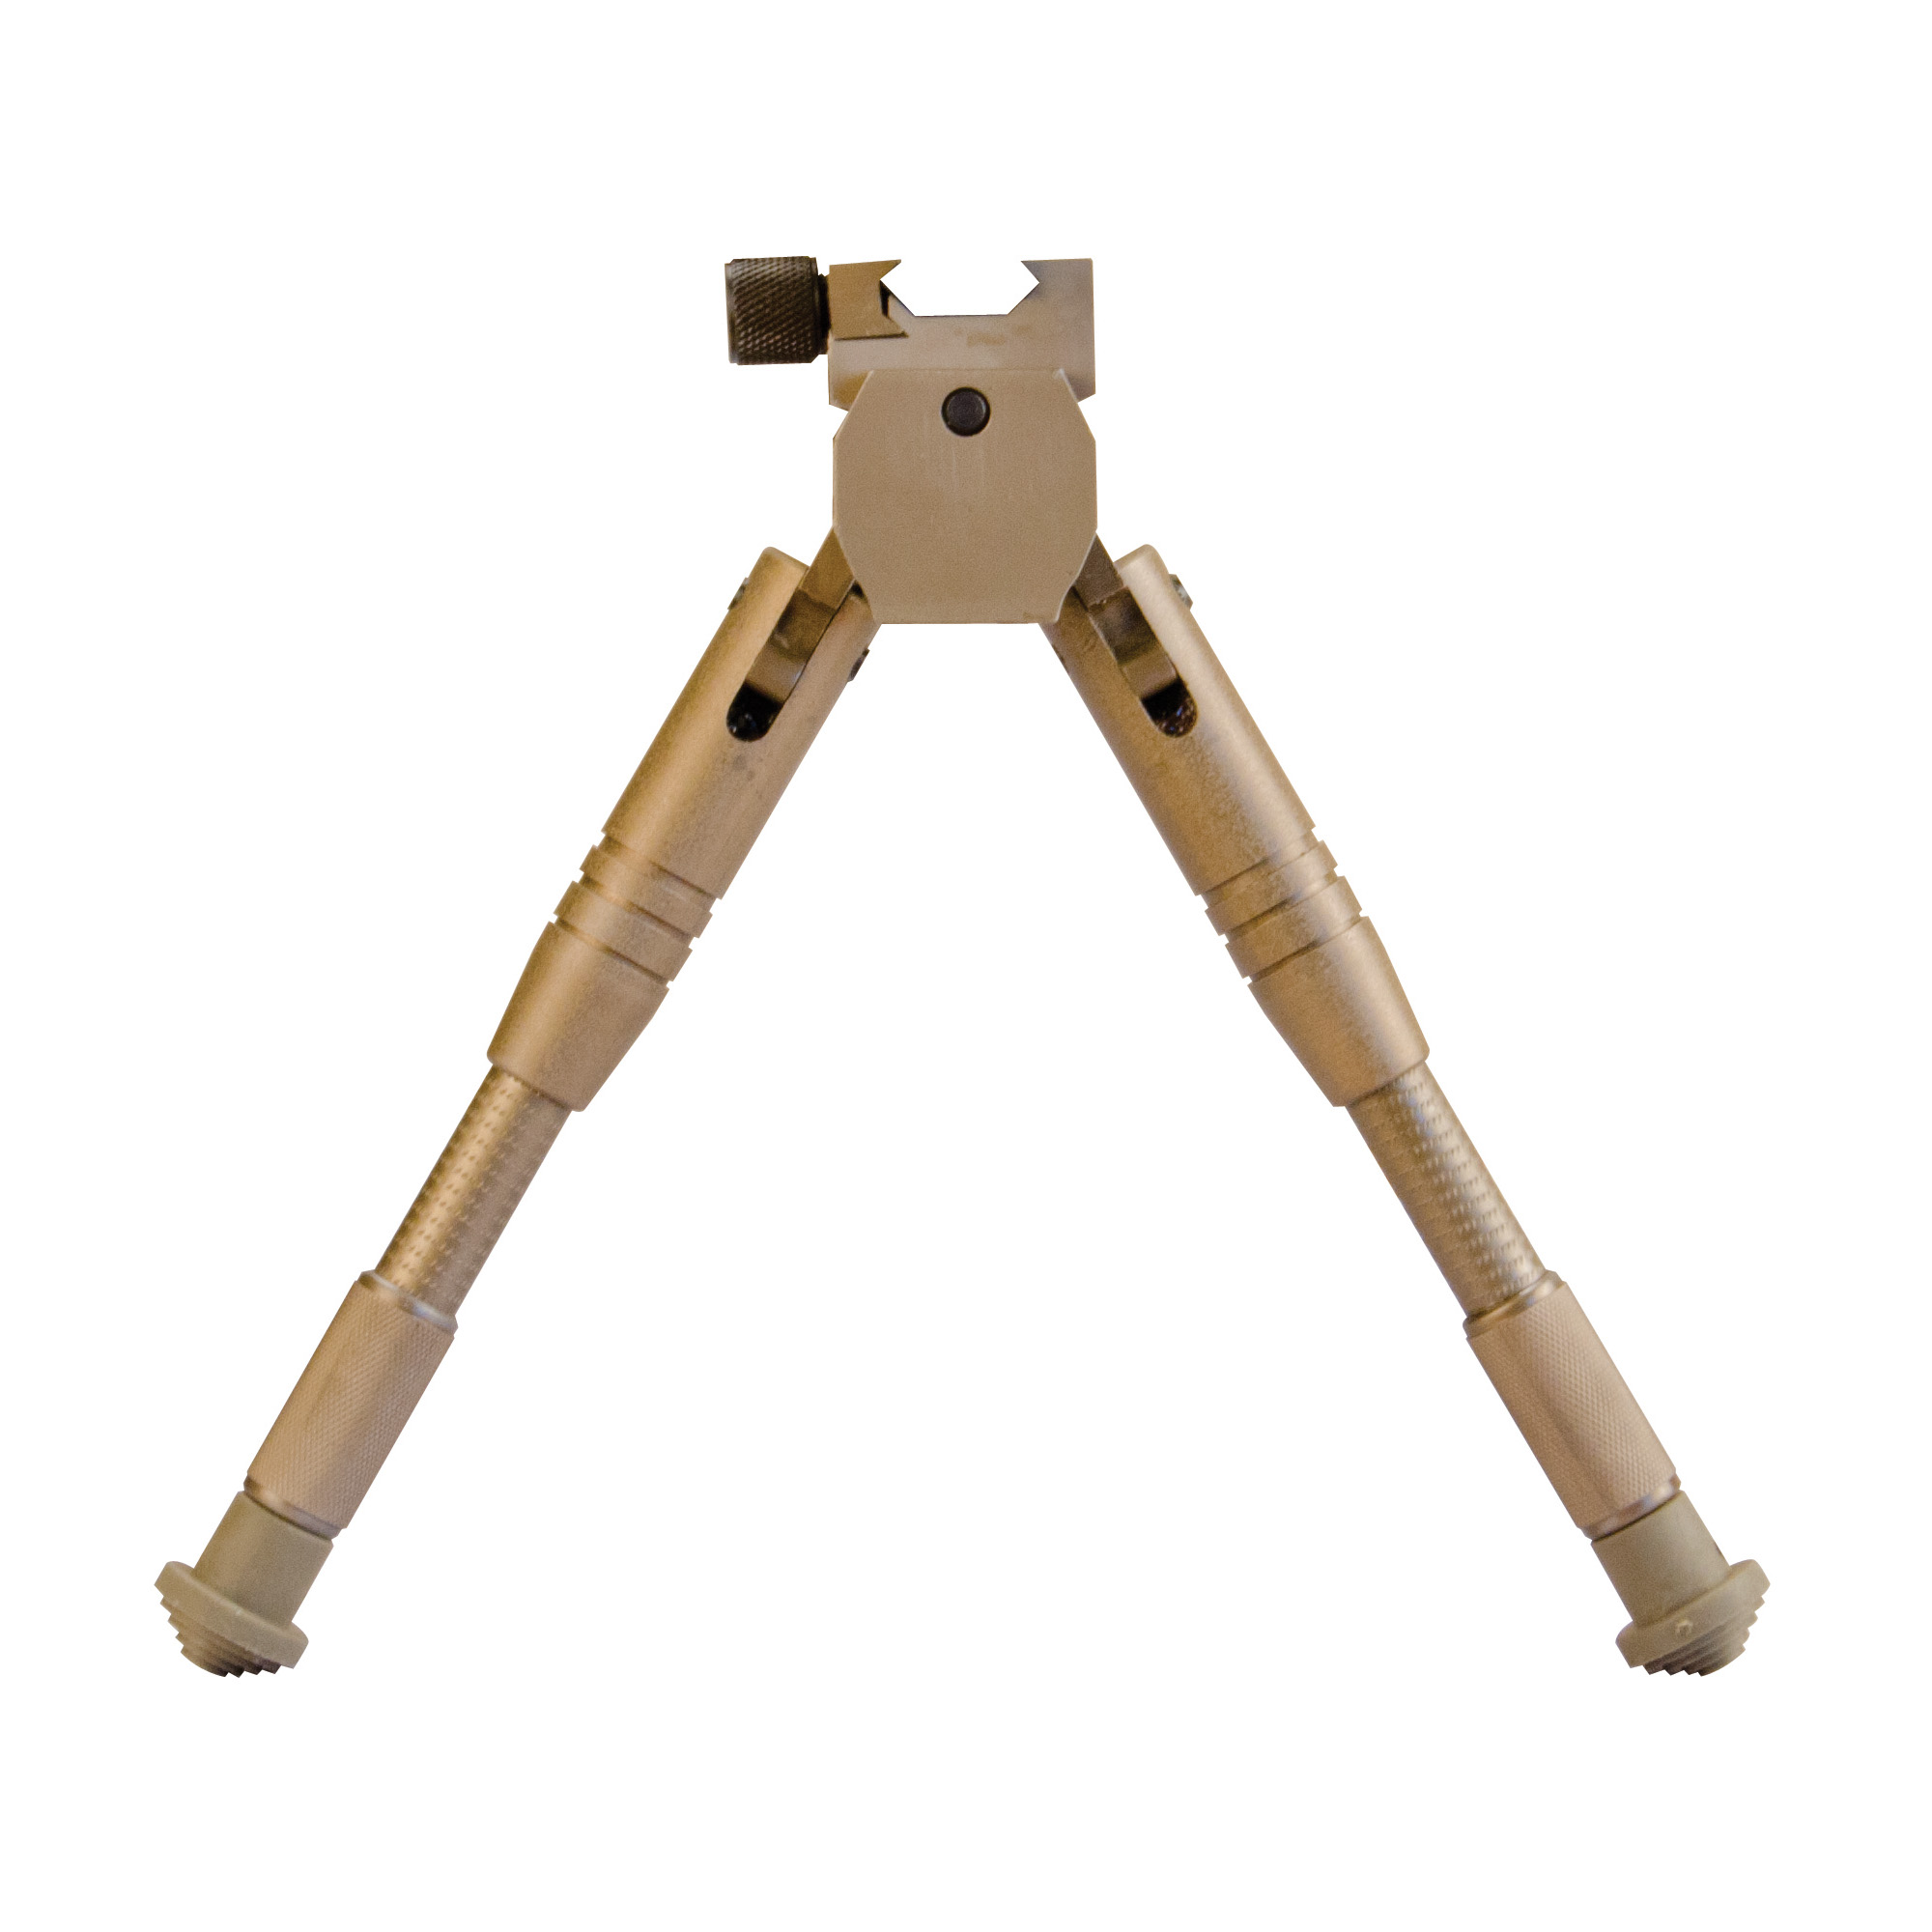 """Caldwell's AR Bipod Prone 7.5""""-10"""" combines a quick attach system for securing to any picatinny rail. Its built in systems for both pivot and cant movements give the shooter maximum range of alignment without having to reposition the bipod. The unique internal spring system is both low profile and quiet. The unique leg adjustment mechanism delivers fast and secure"""" no-wobble height positioning. Rubber feet ensure good grip on all surfaces. Lightweight and durable anodized aluminum construction."""